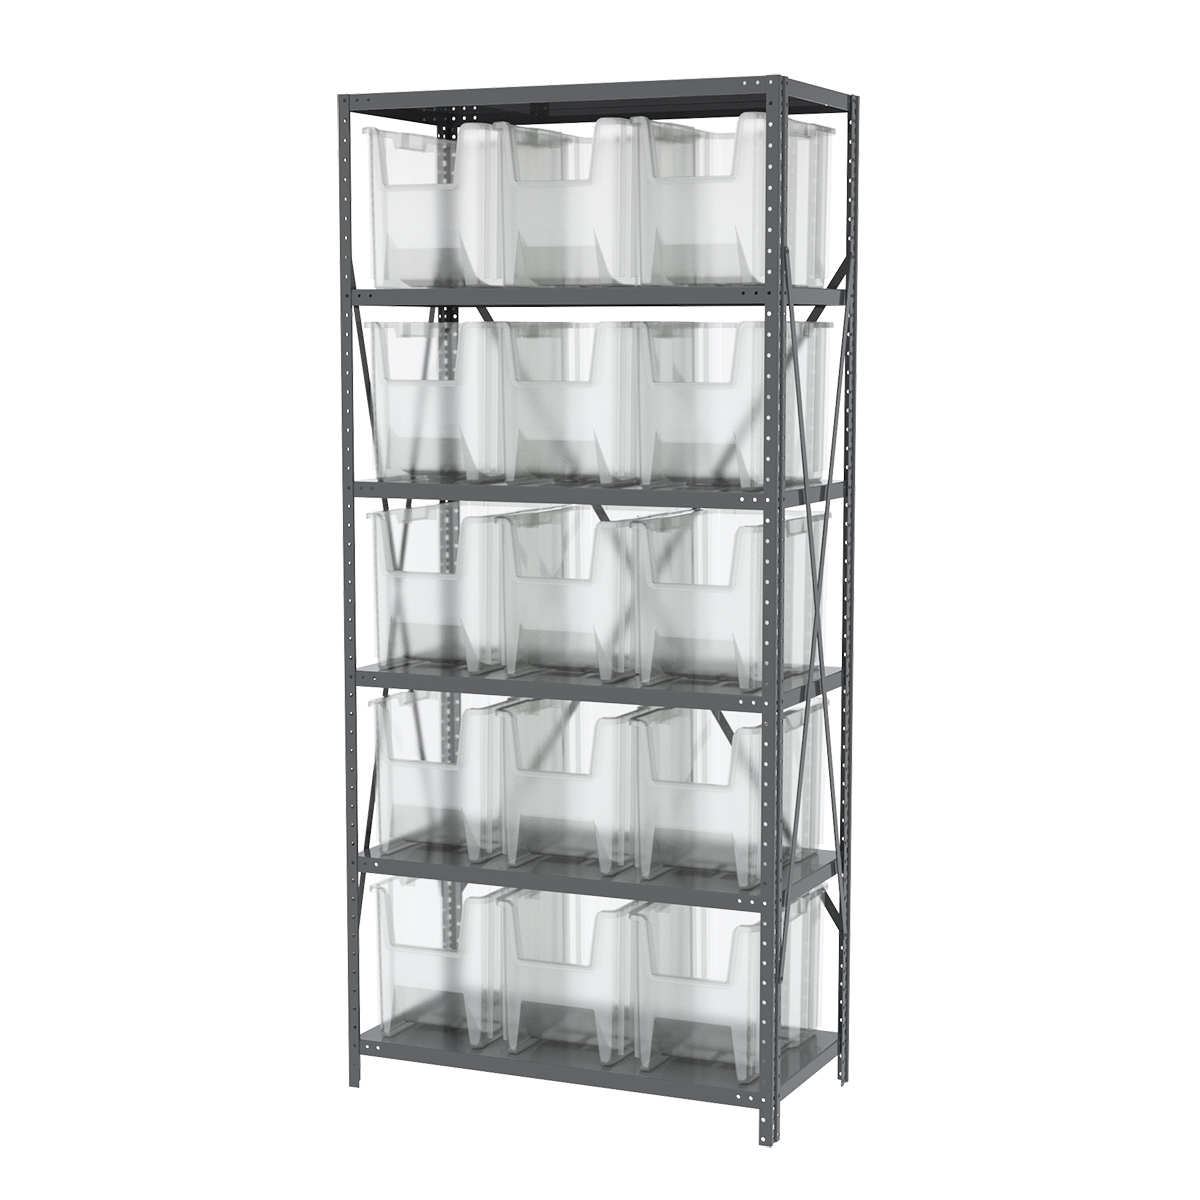 Steel Shelving Kit, 18x36x79, 16 Bins, Gray/Clear.  This item sold in carton quantities of 1.